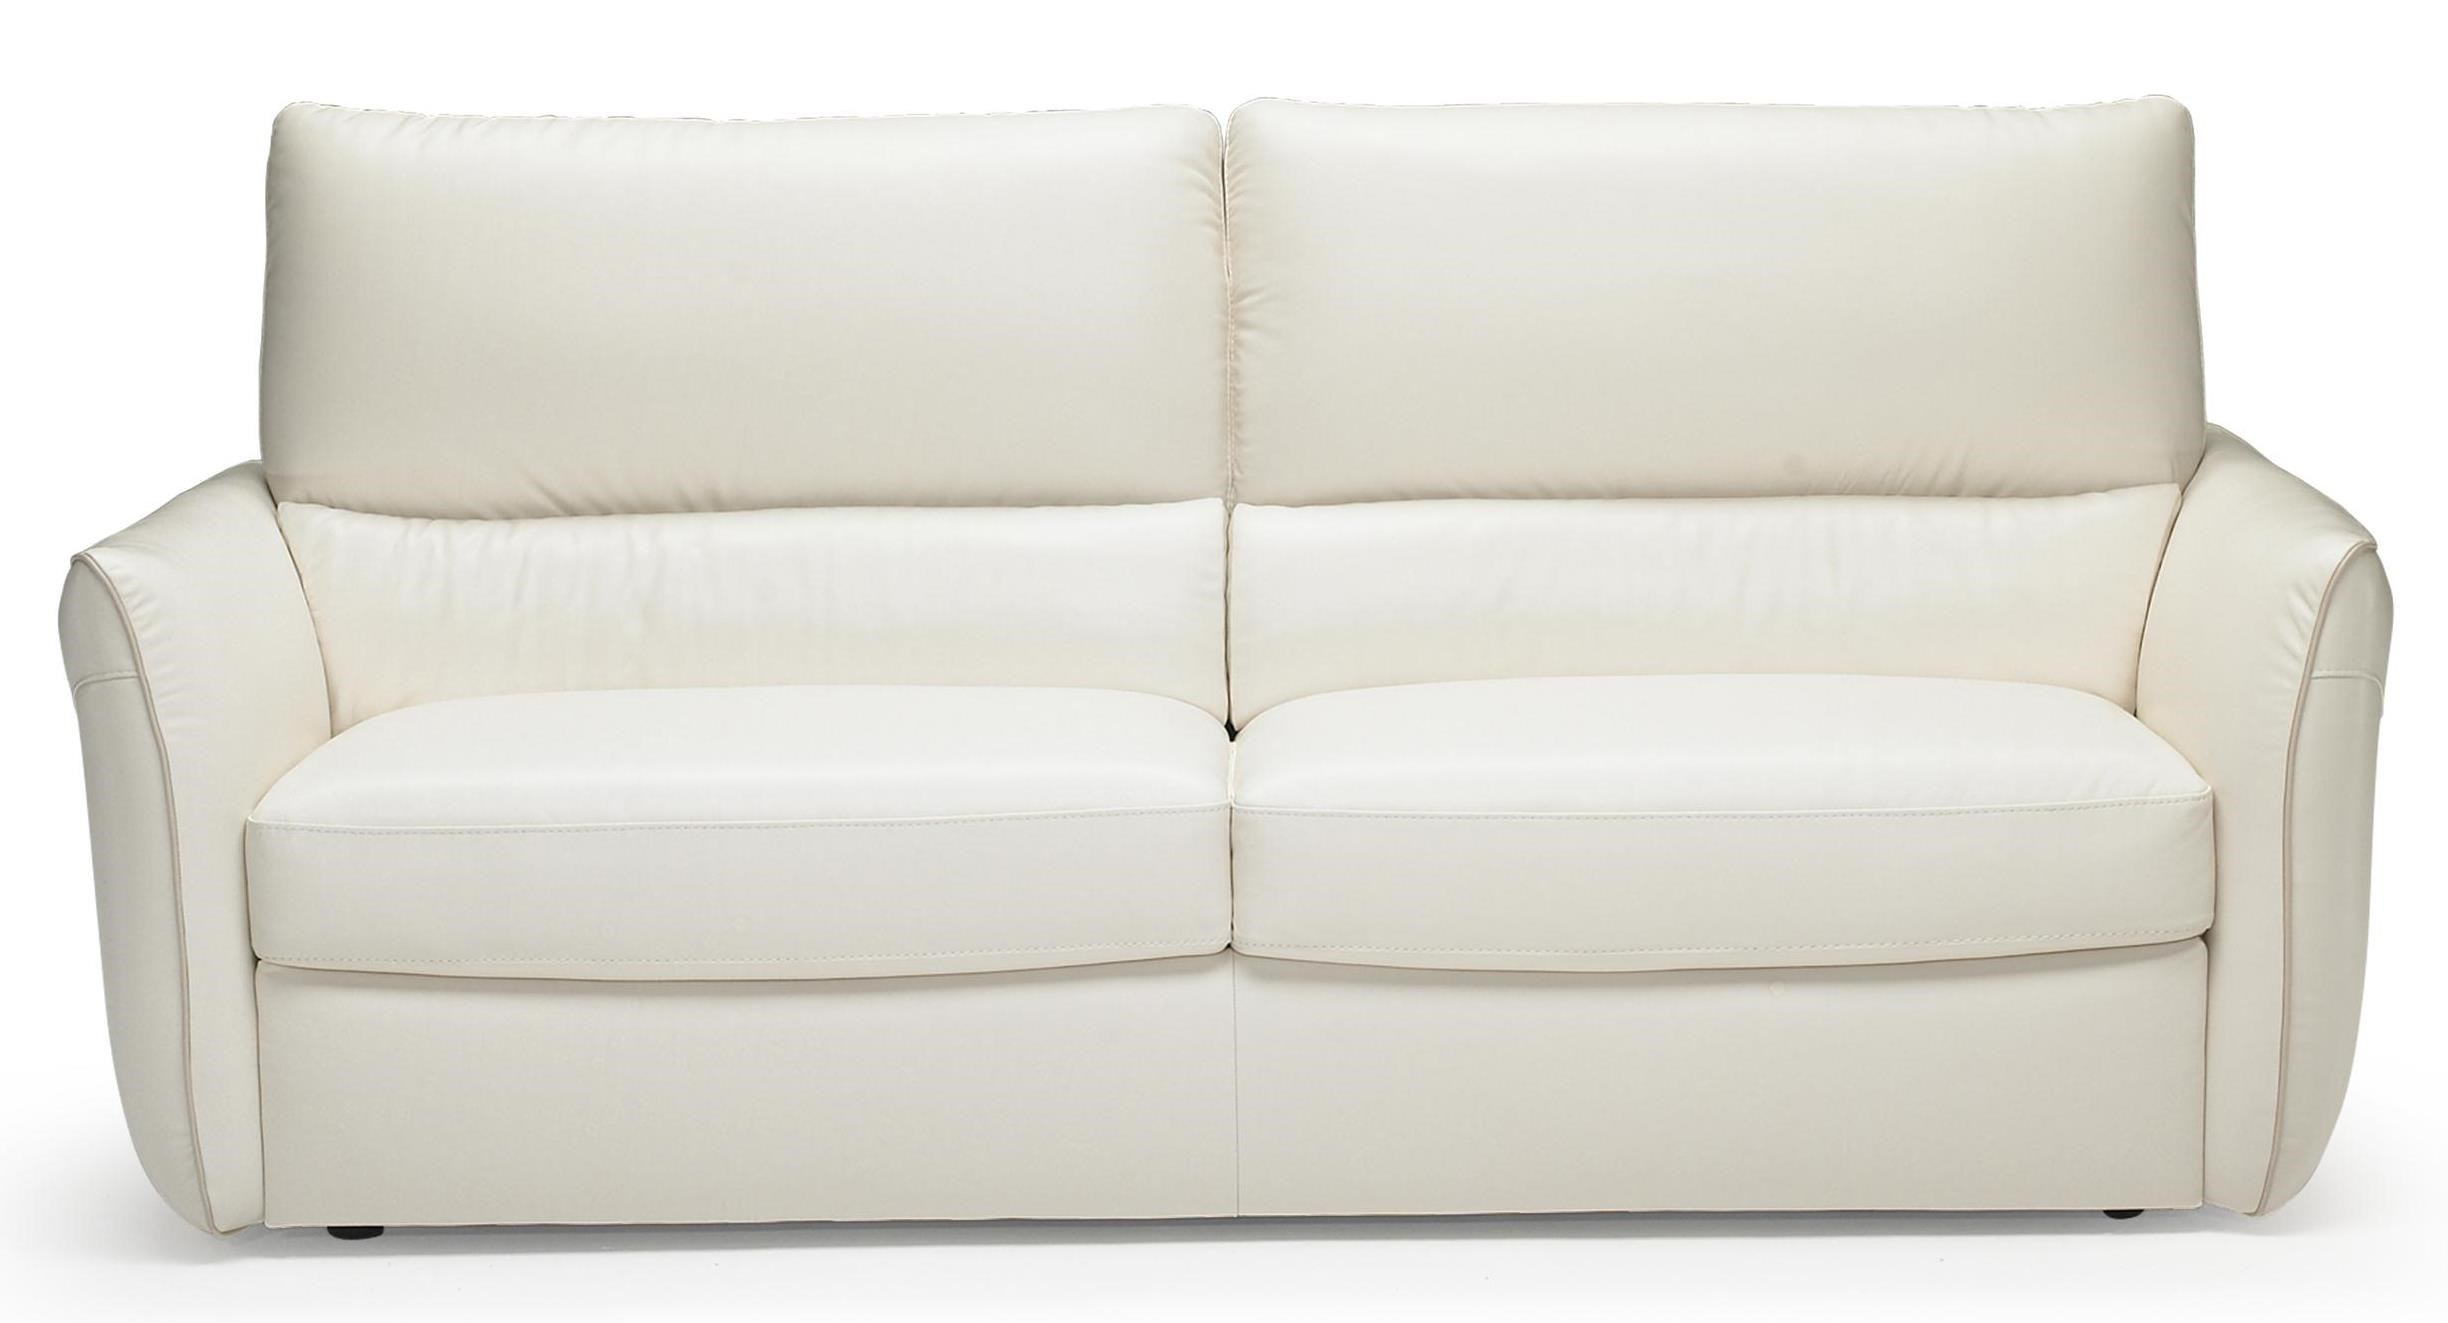 Natuzzi Editions B842 Modern Two Cushion Sofa